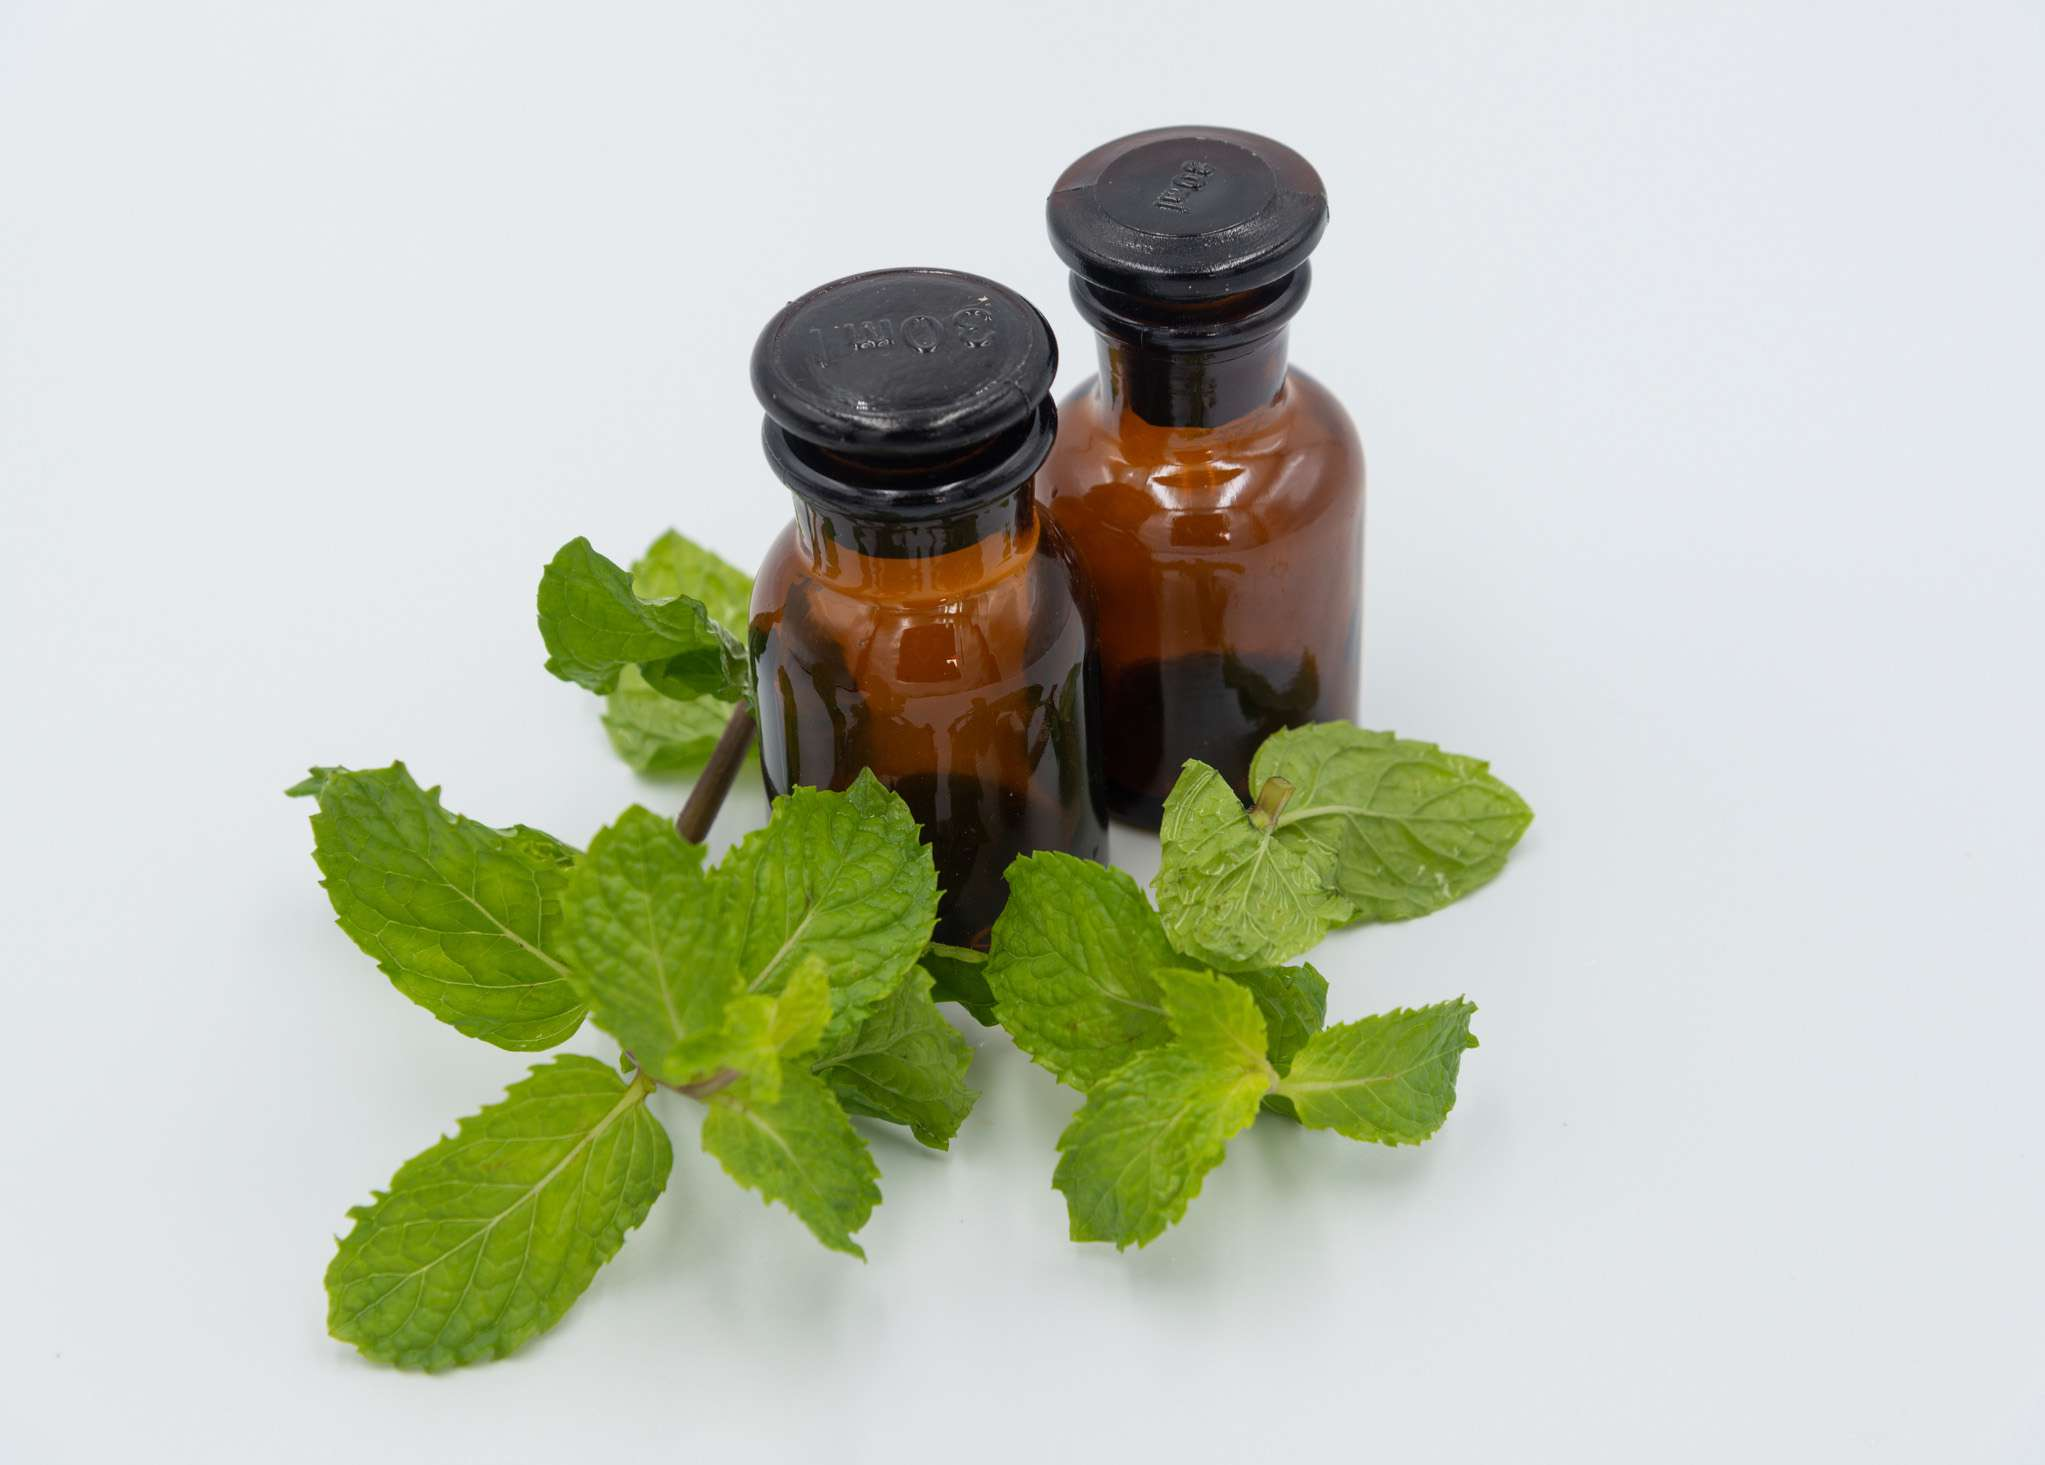 Peppermint oil on white background